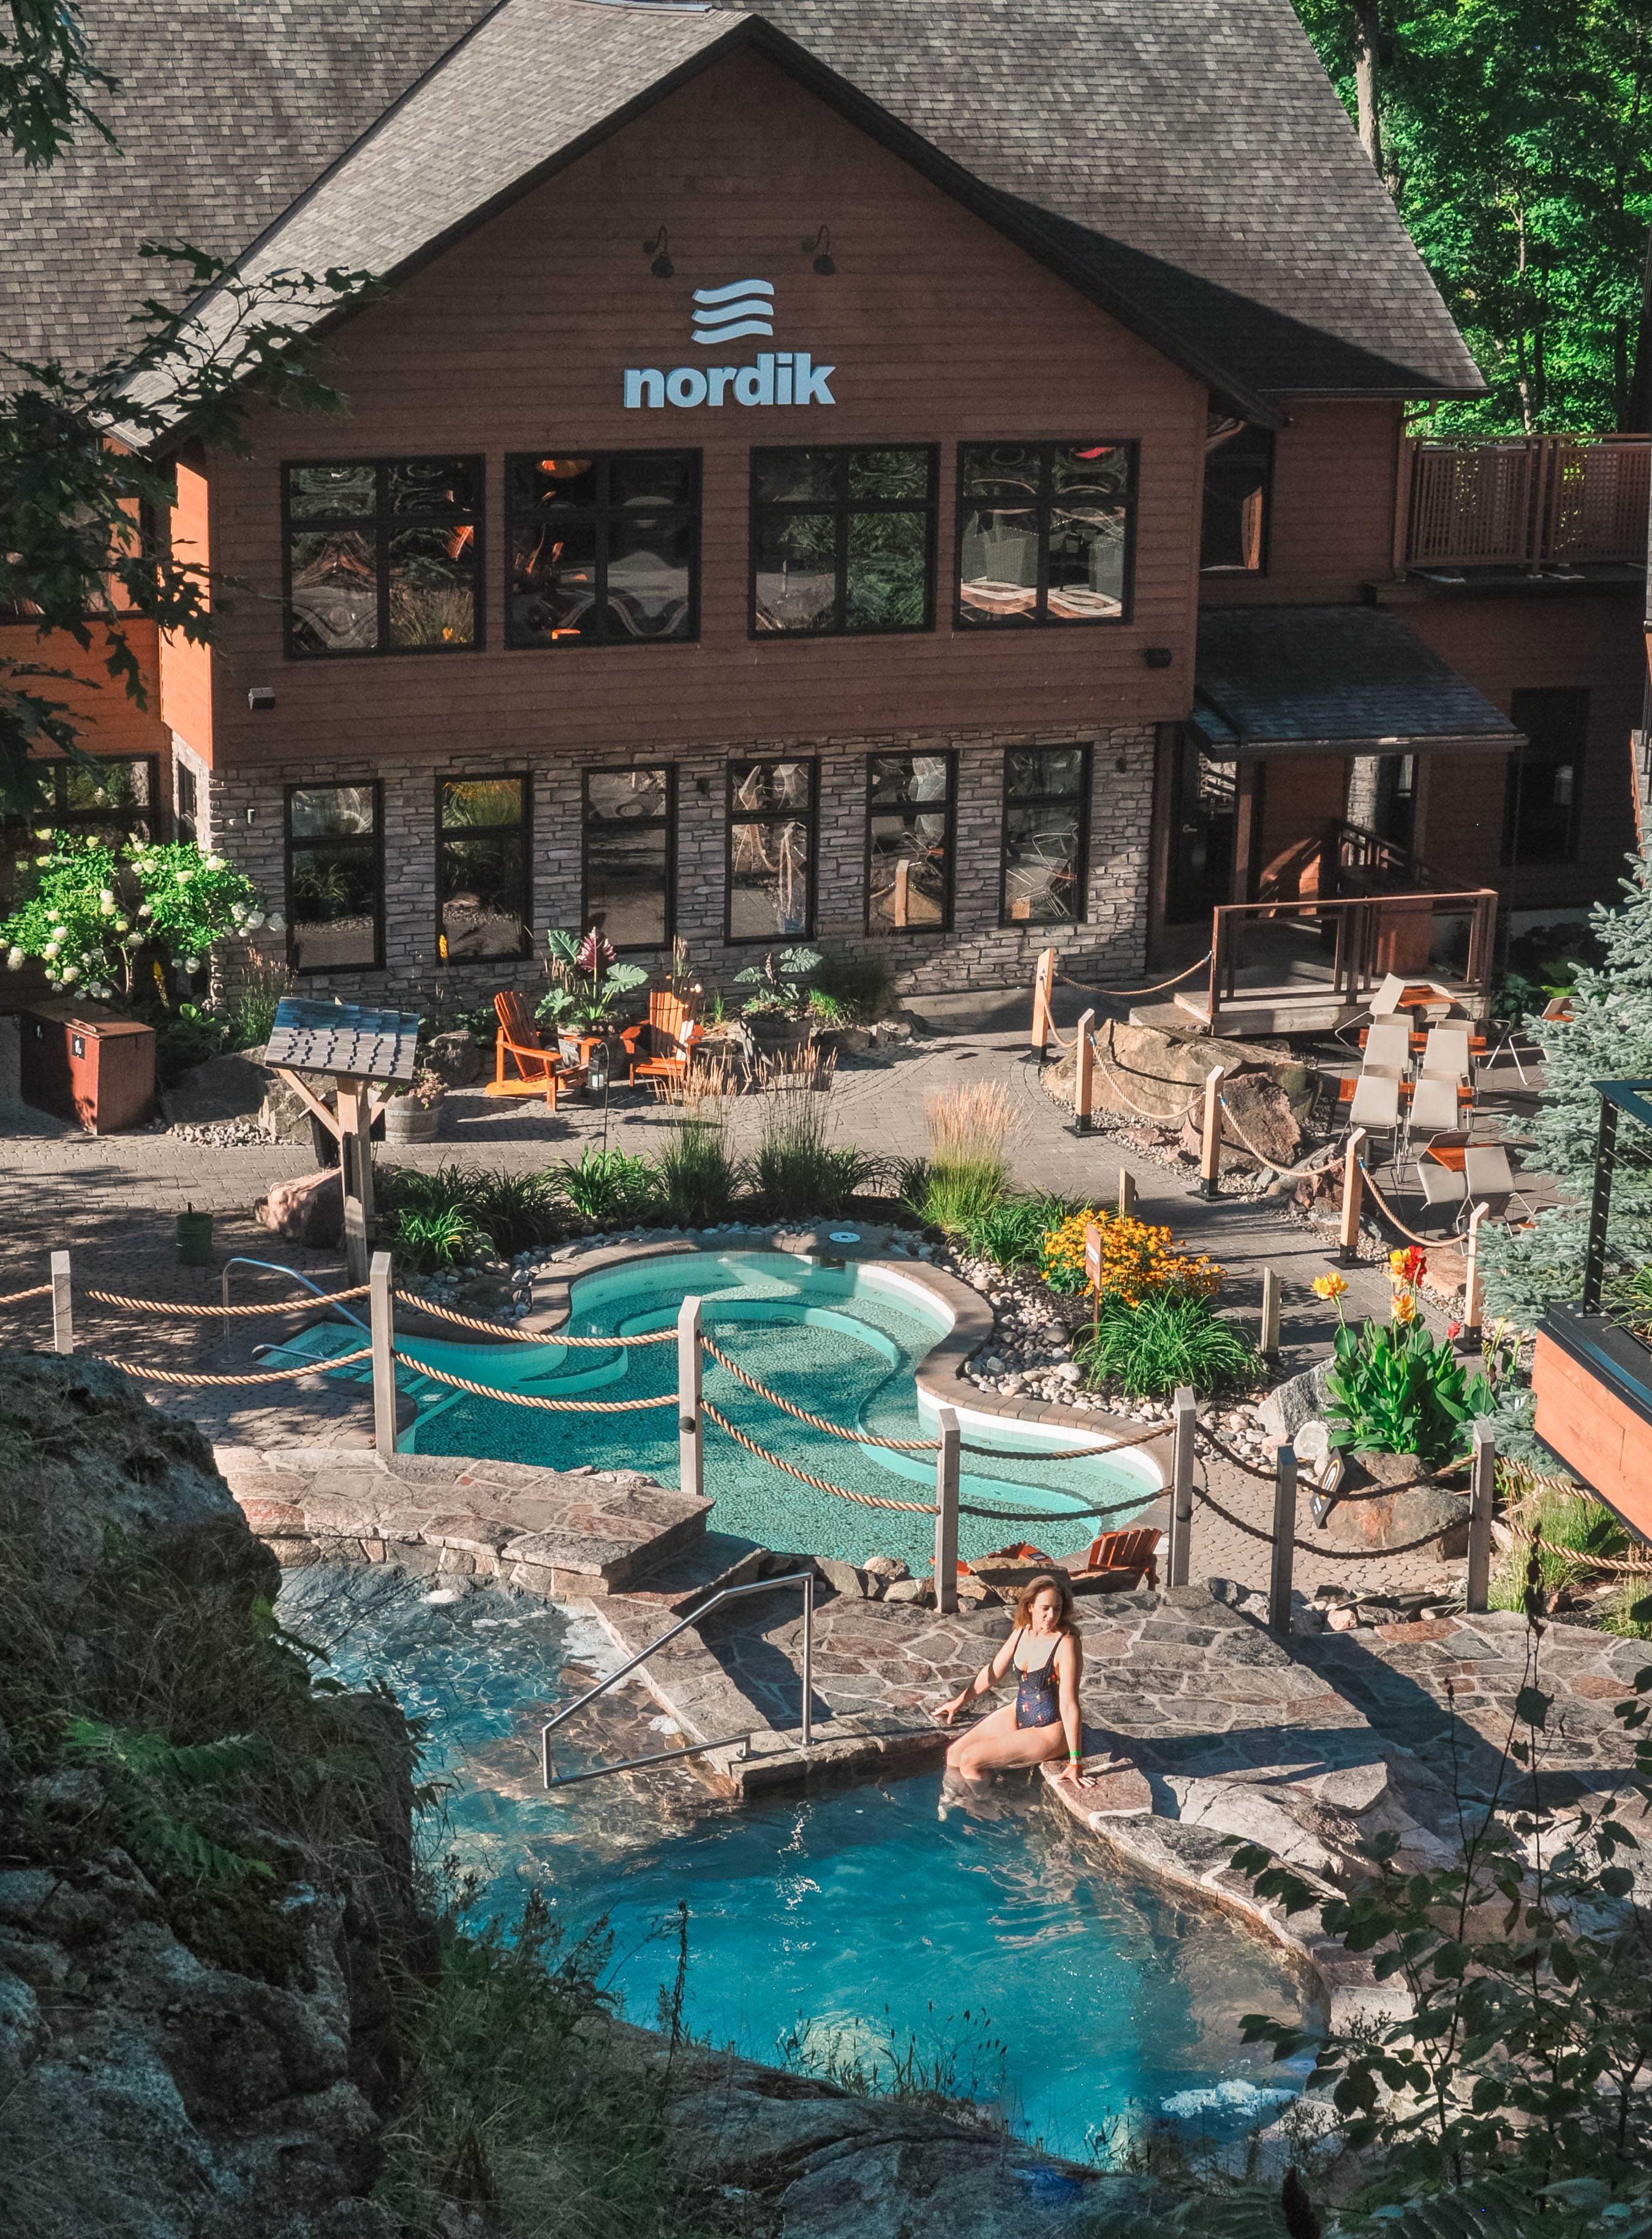 12 Ways to Relax and Unwind at the Nordik Spa: Ottawa's Luxury Escape